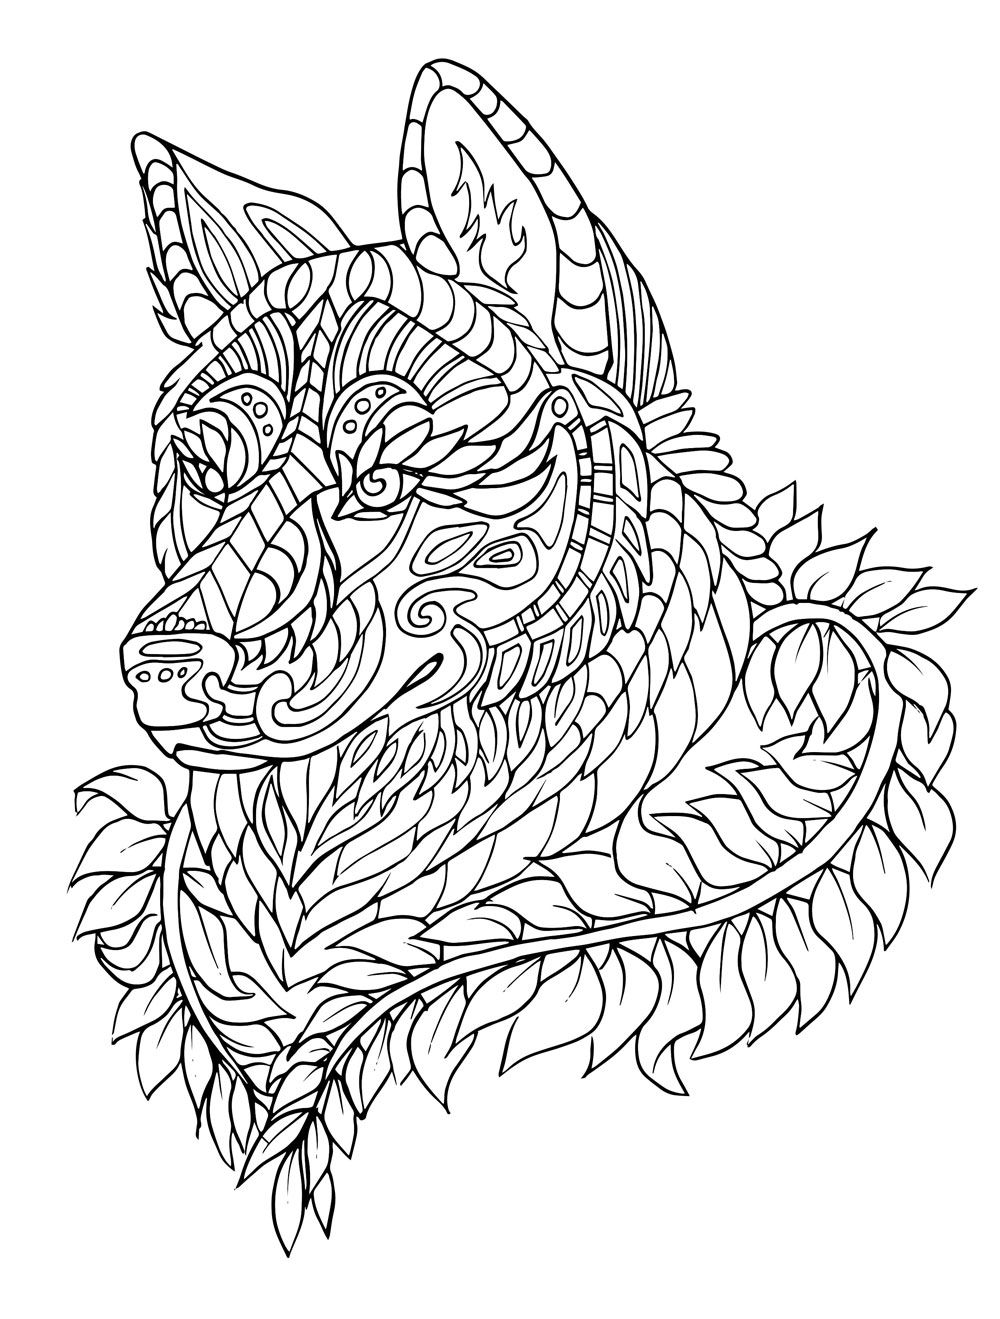 - Adult Coloring Book Printable (With Images) Horse Coloring Pages